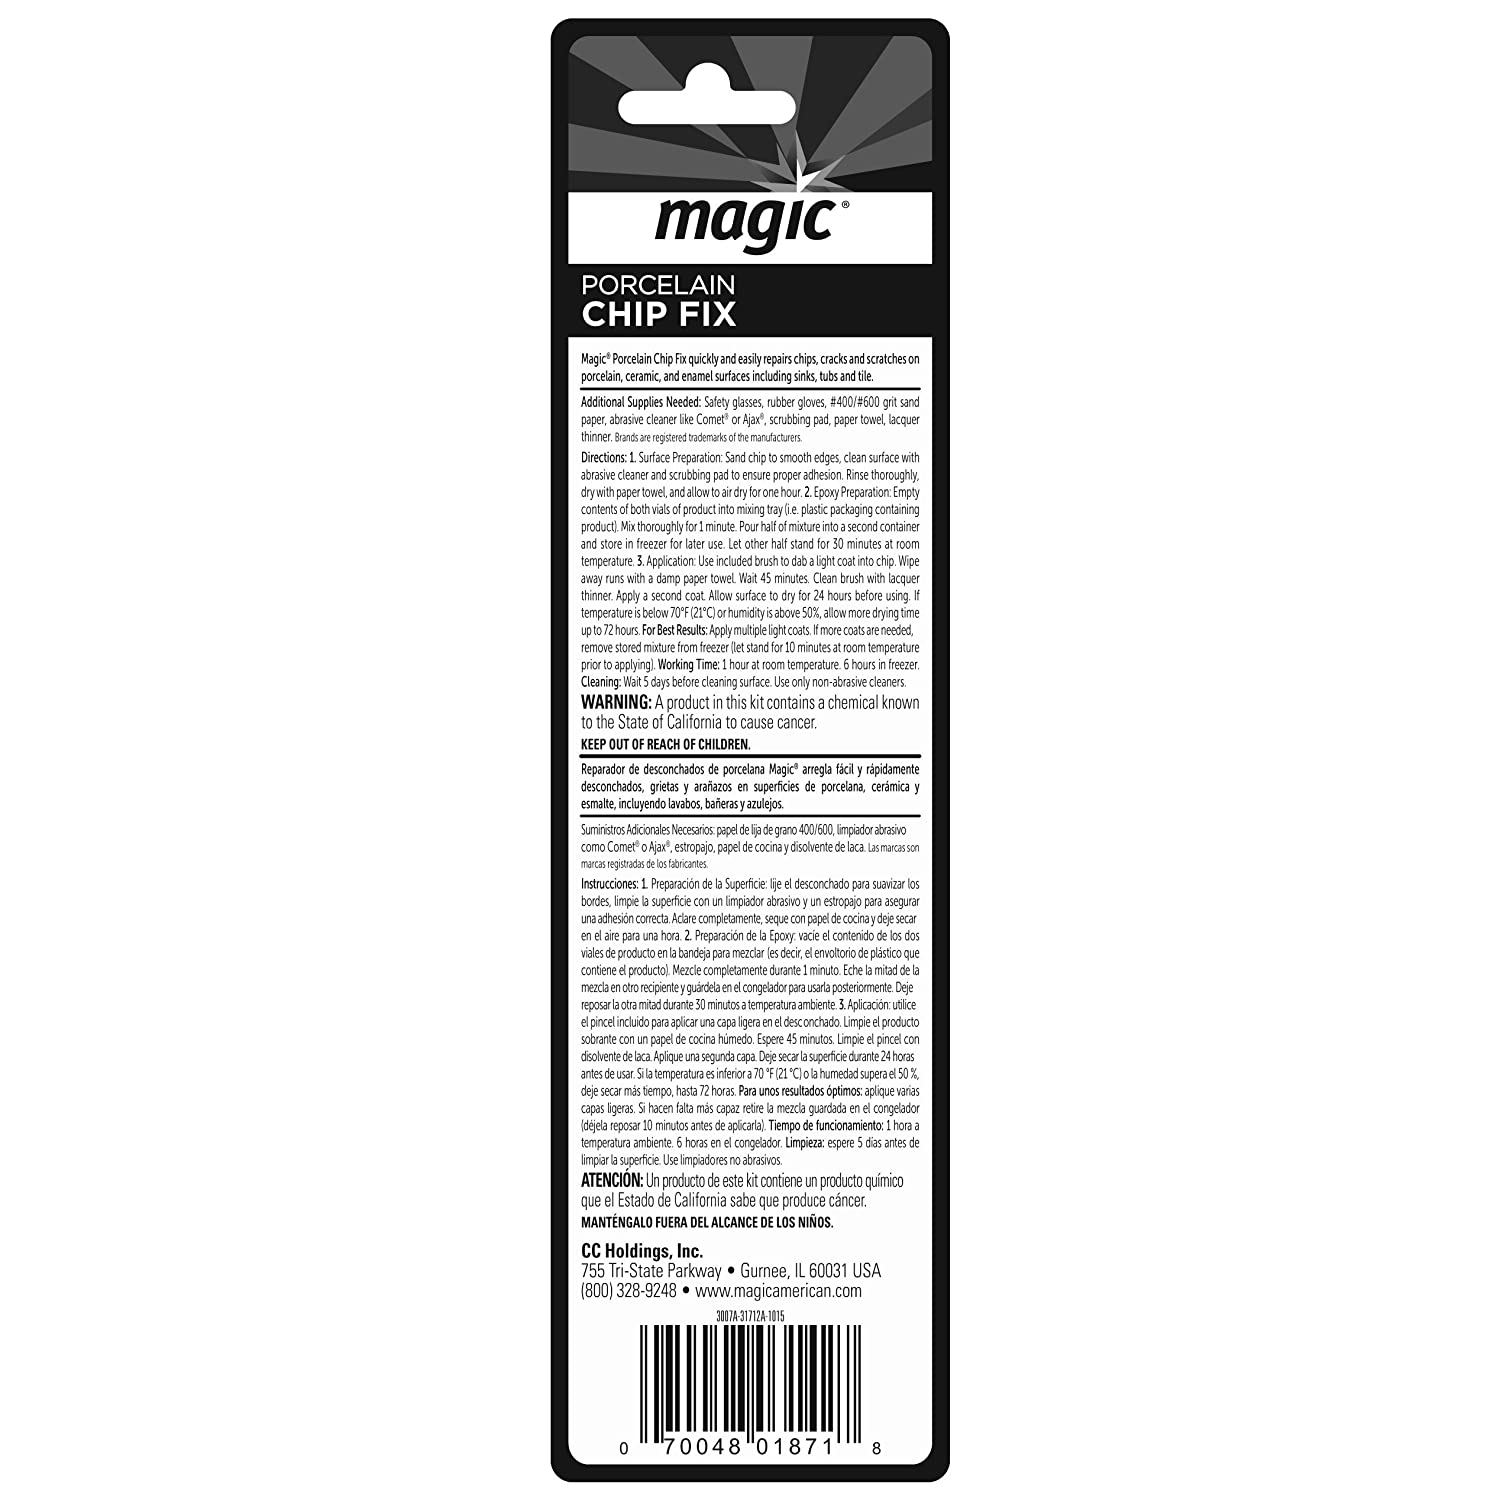 Amazon magic porcelain 2 part epoxy chip fix white home amazon magic porcelain 2 part epoxy chip fix white home kitchen dailygadgetfo Choice Image